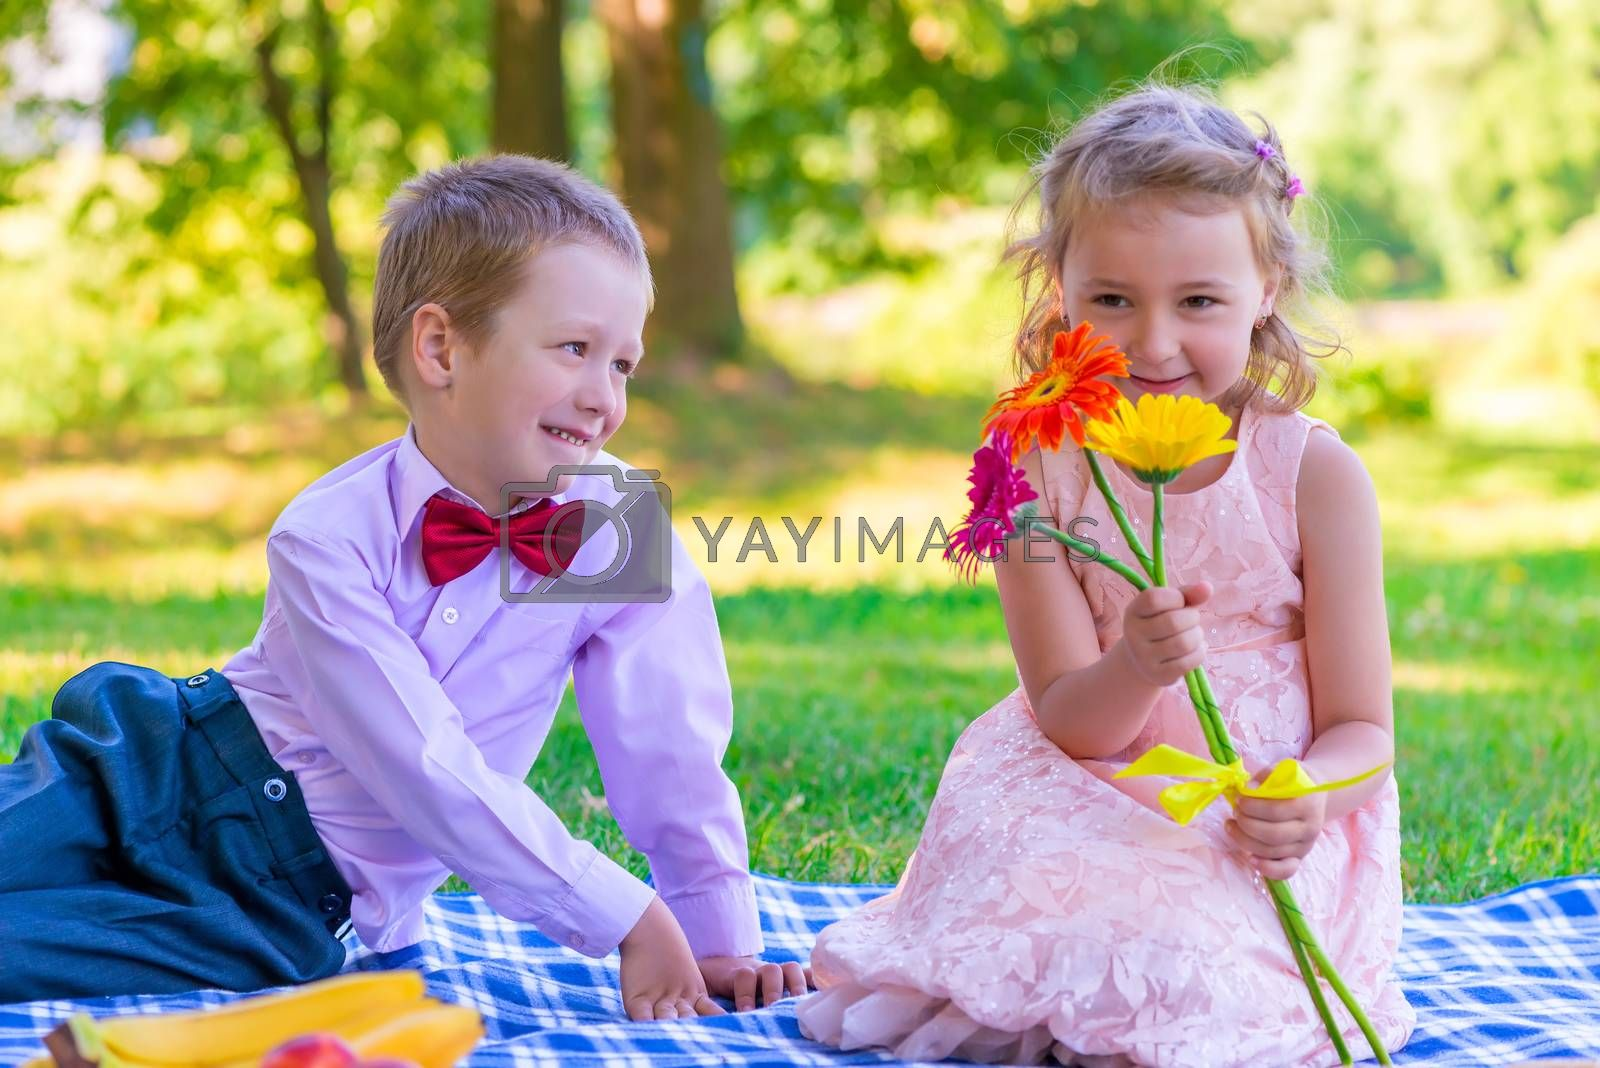 6year old children on a date in the summer park